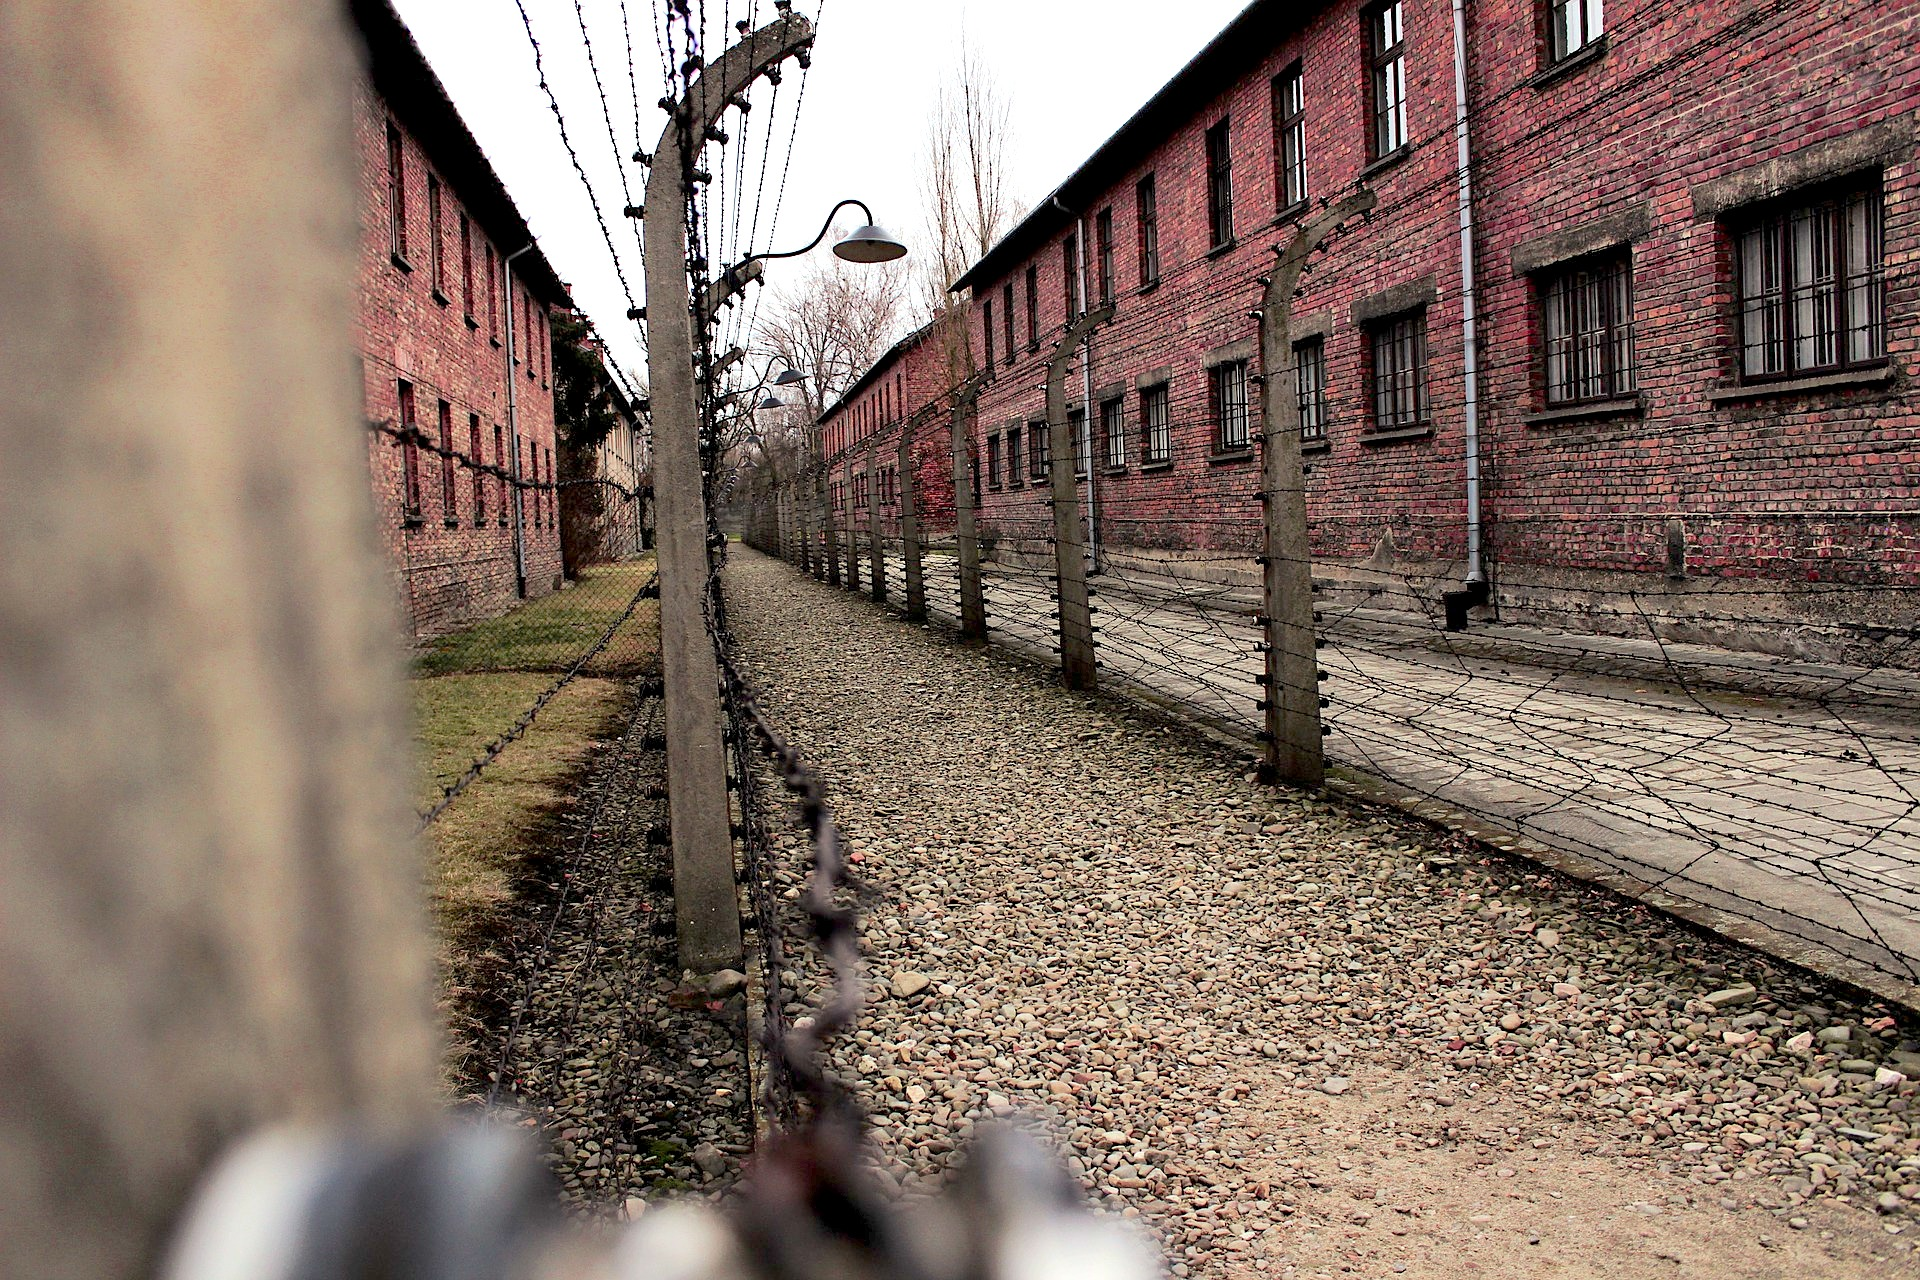 mauthausen, concentration camp, WW II, WW 2, Nazi, Jews, history, private tour, sightseeing